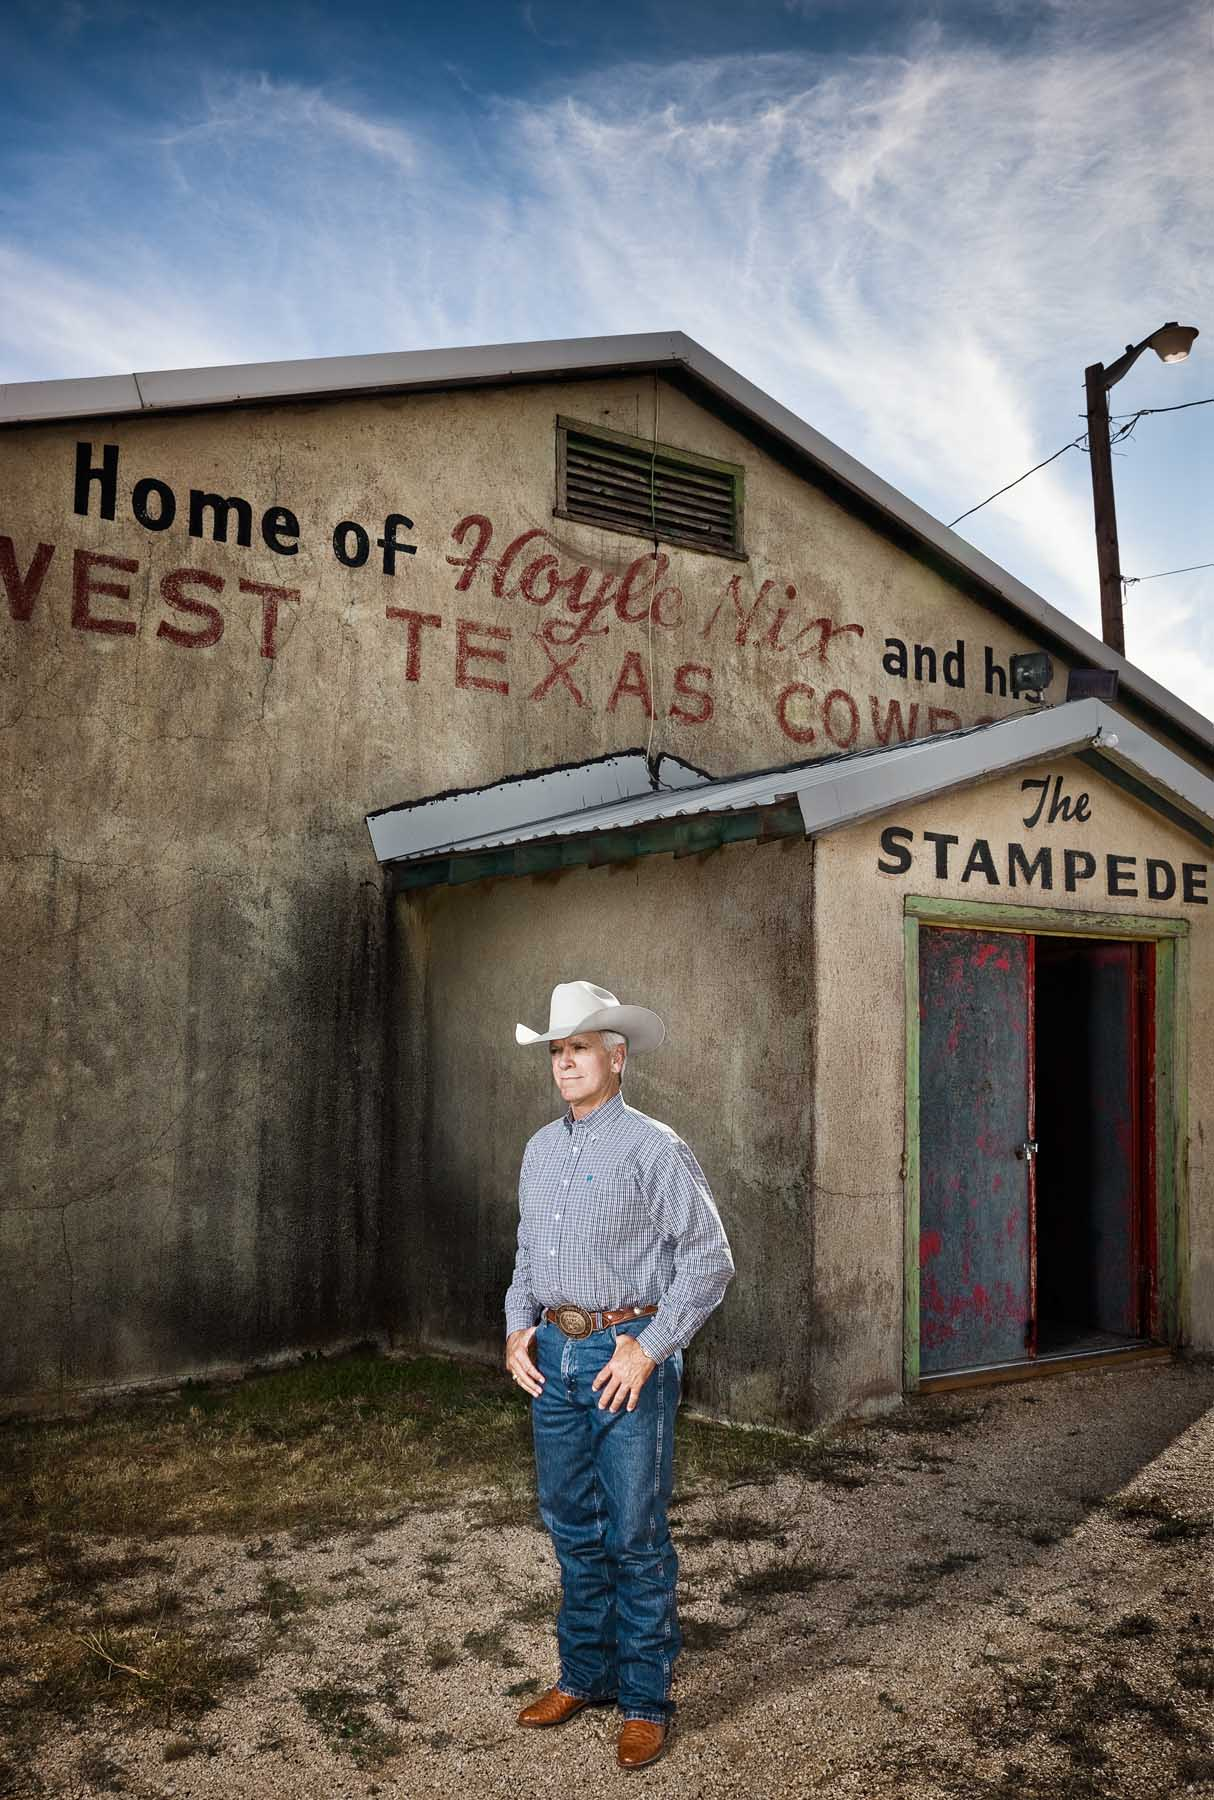 TEXAS DANCEHALLS, THE STAMPEDE